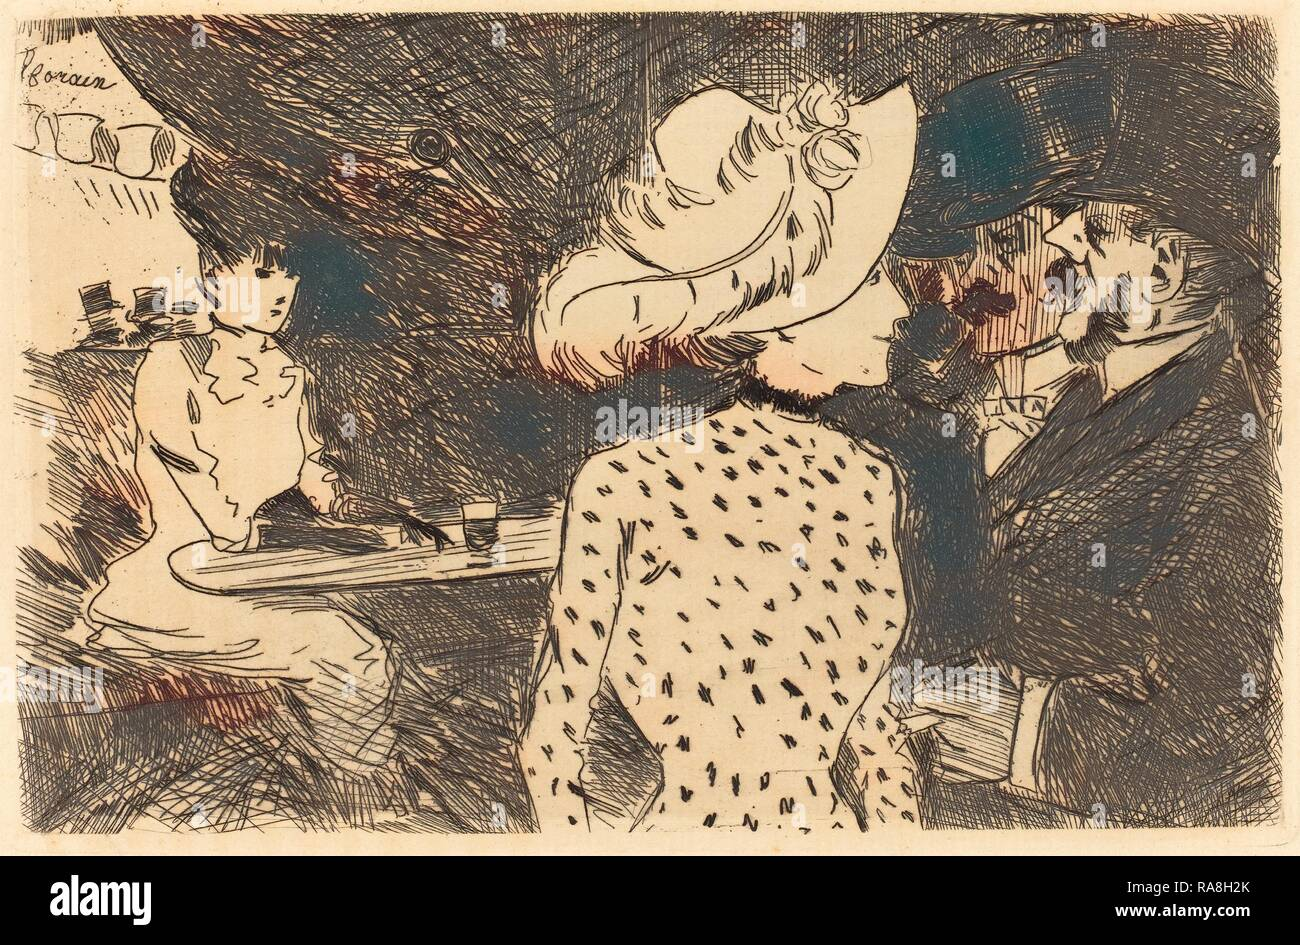 Jean-Louis Forain (French, 1852 - 1931), The Folies Bergere (refused plate, second plate), 1880 and 1886, etching reimagined - Stock Image